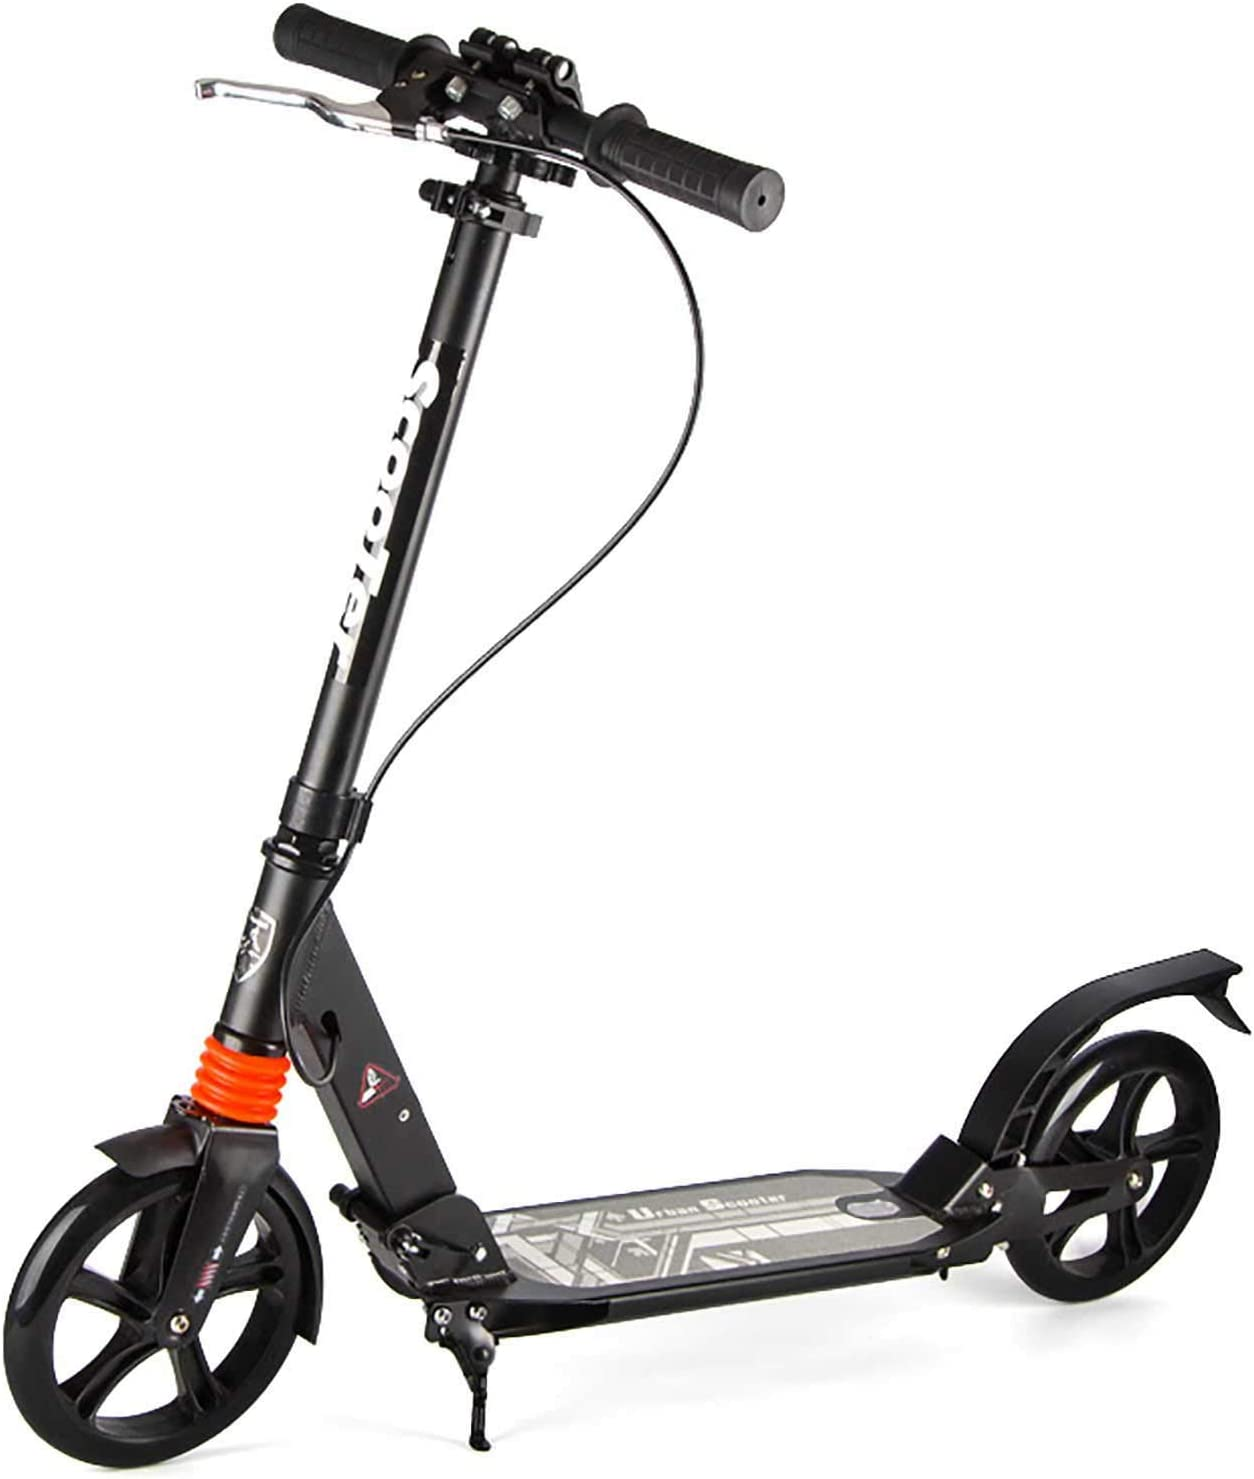 Charlotte Mall GAOPANG Foldable Kick Scooters Shock-Abs Adjustable Dual Height Branded goods